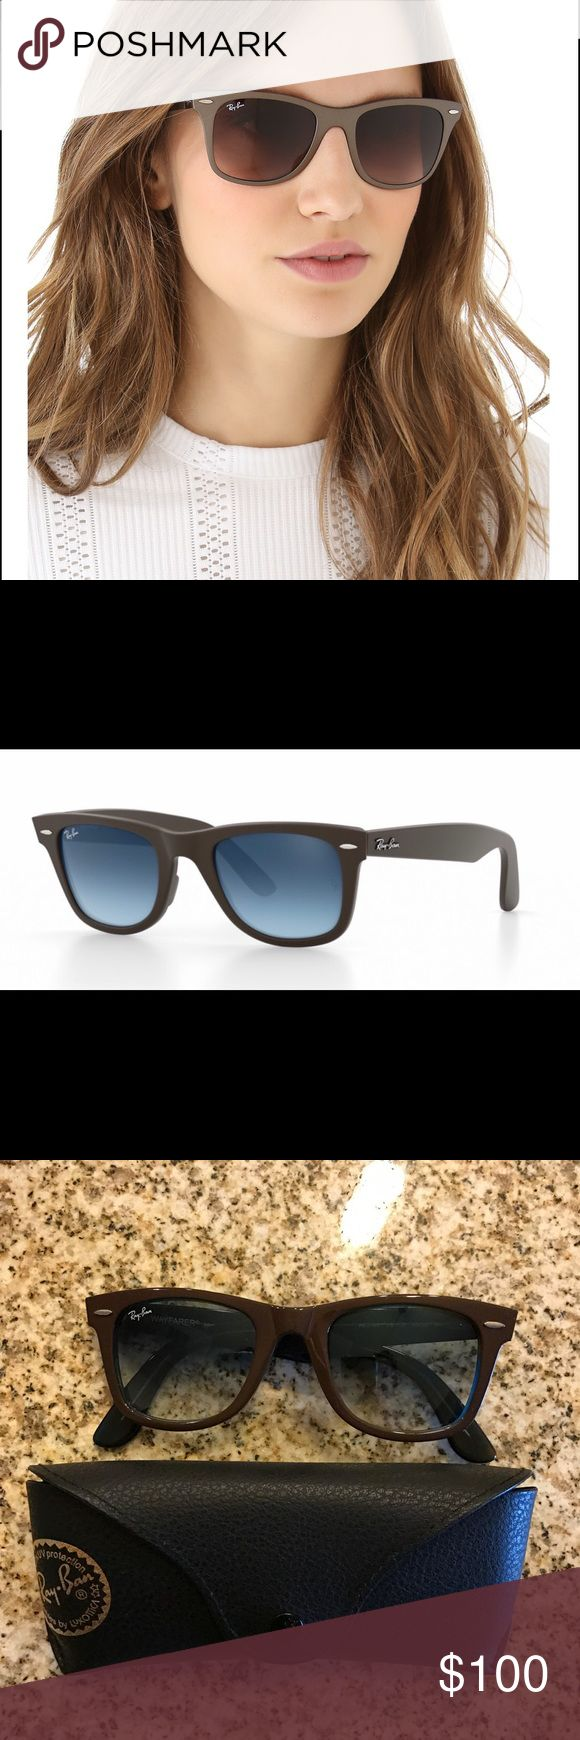 Ray Ban Brown/Blue Wayfarer Ray Ban Original Wayfarer. Frames are brown exterior with blue interior. Lenses are gradient blue. New in case/never worn. Ray-Ban Accessories Sunglasses